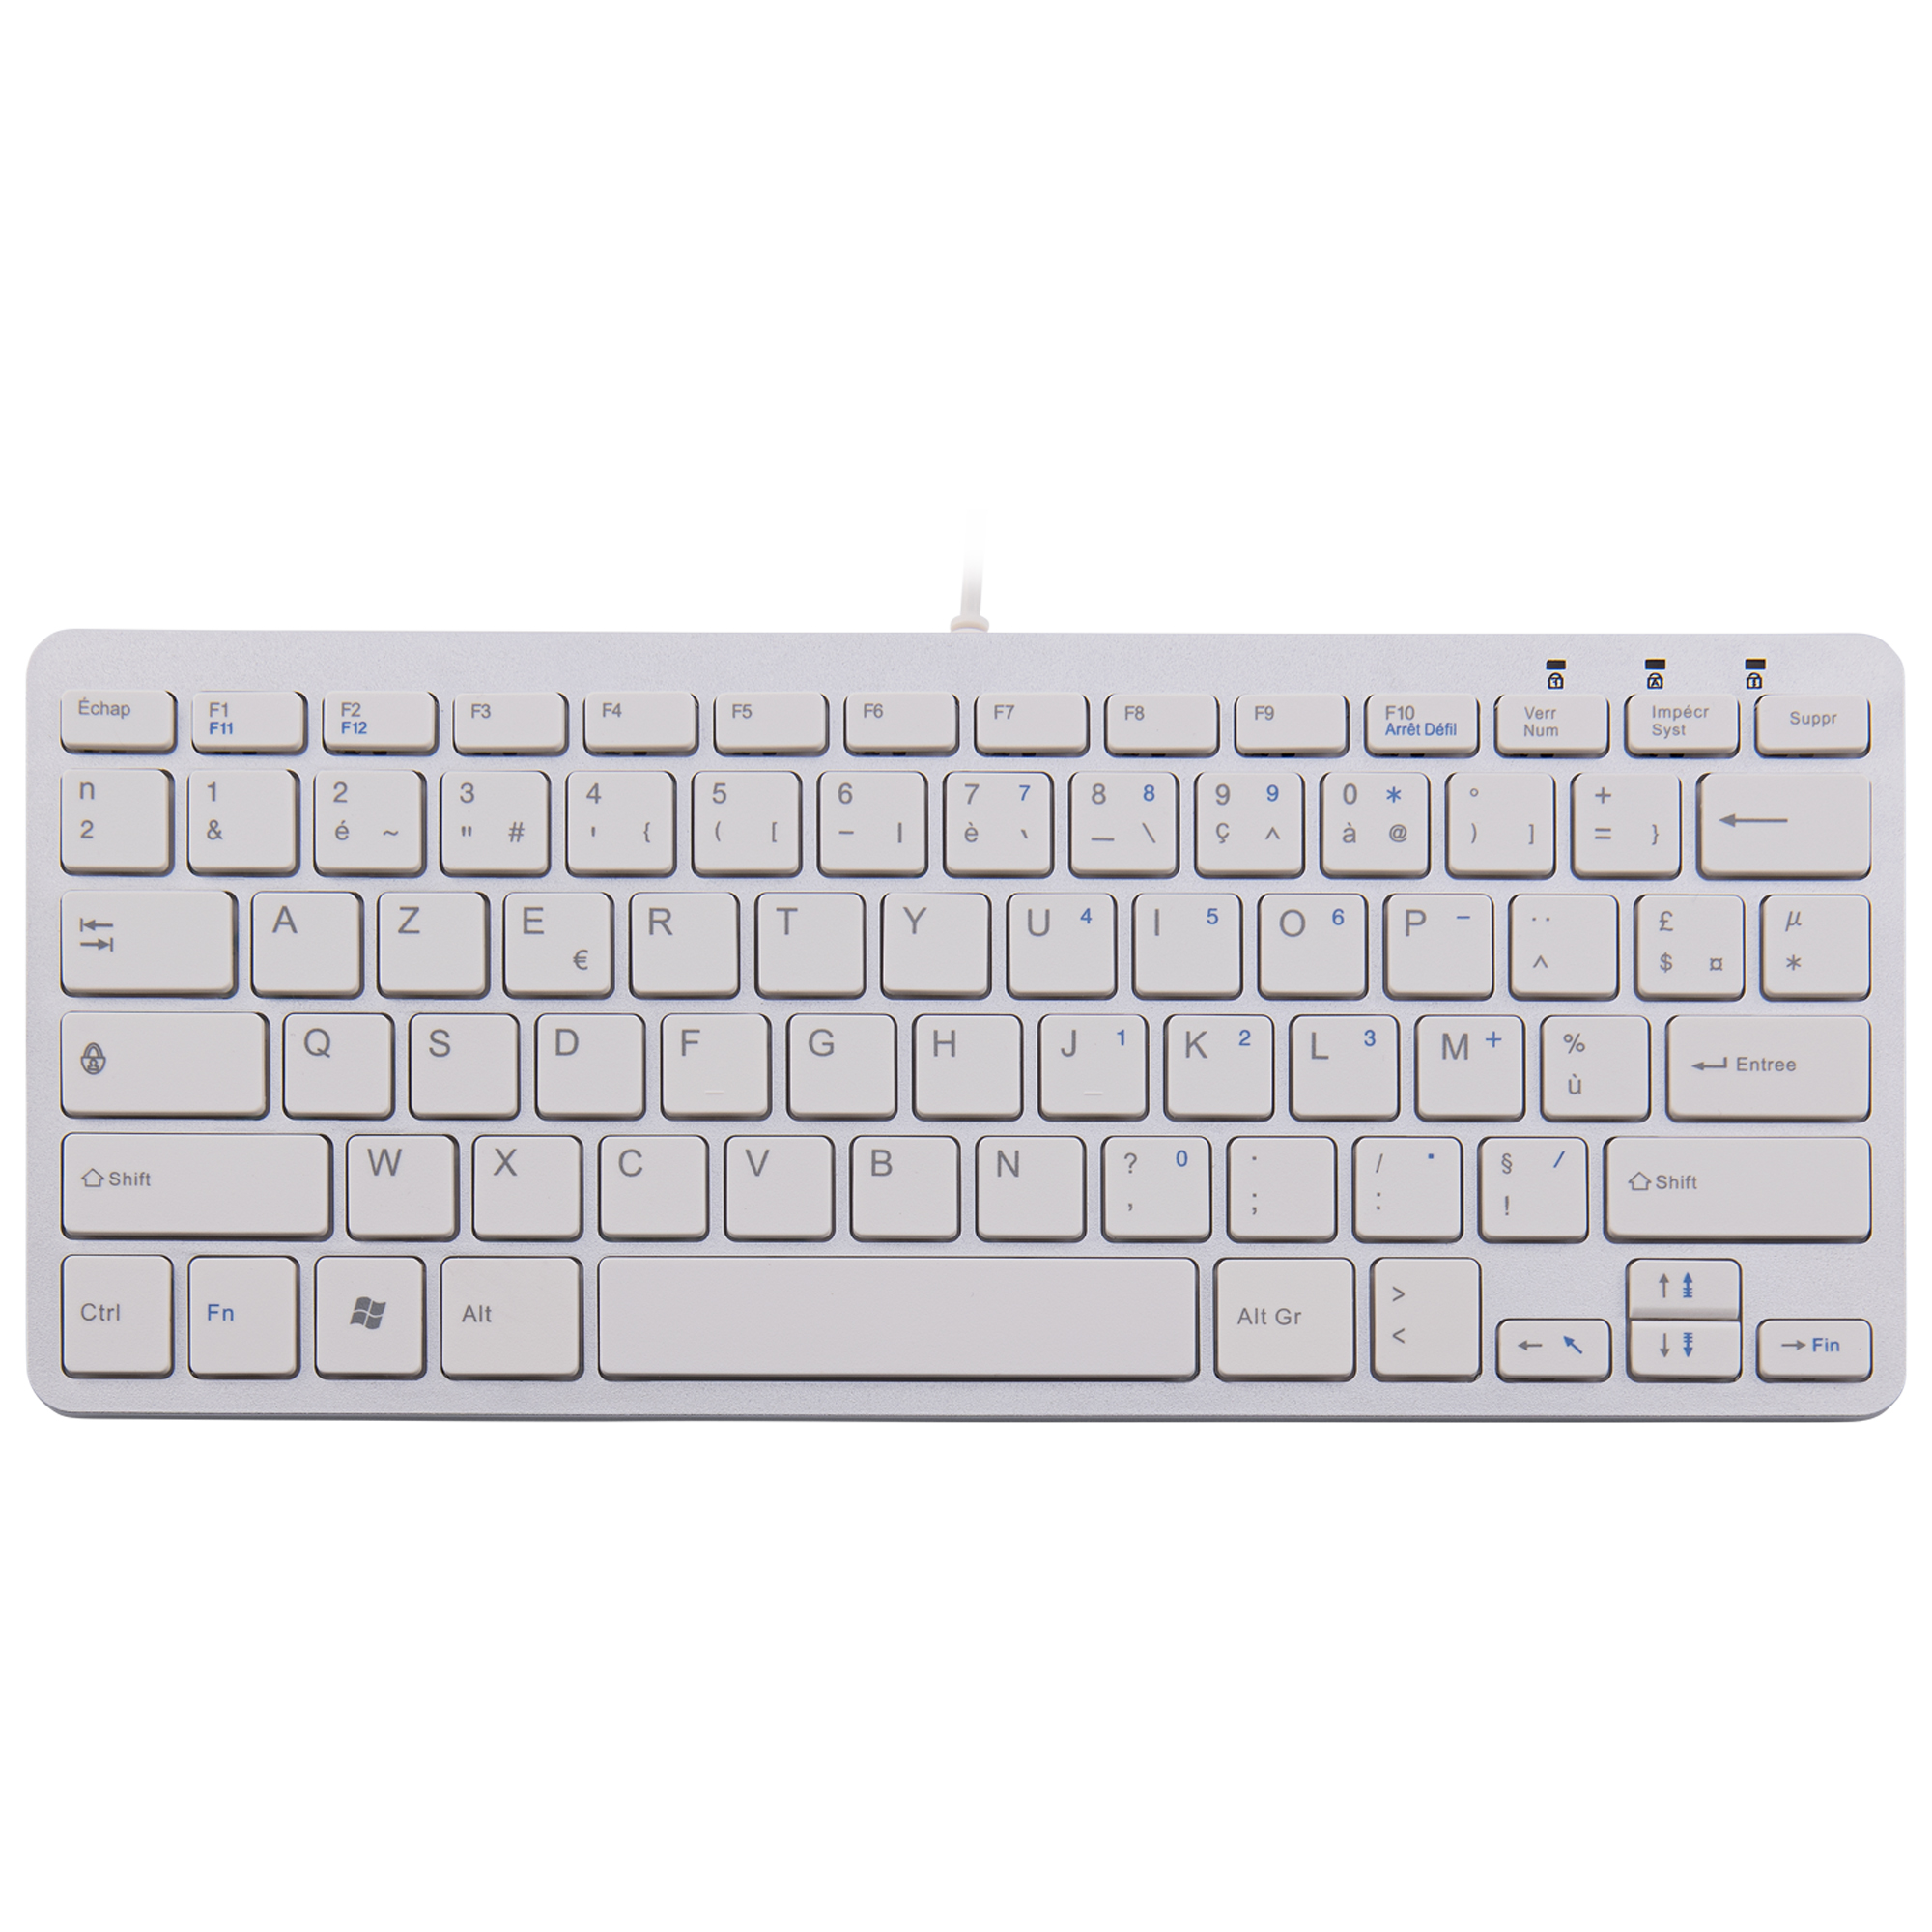 R-Go Compact Keyboard, AZERTY (FR), white, wired